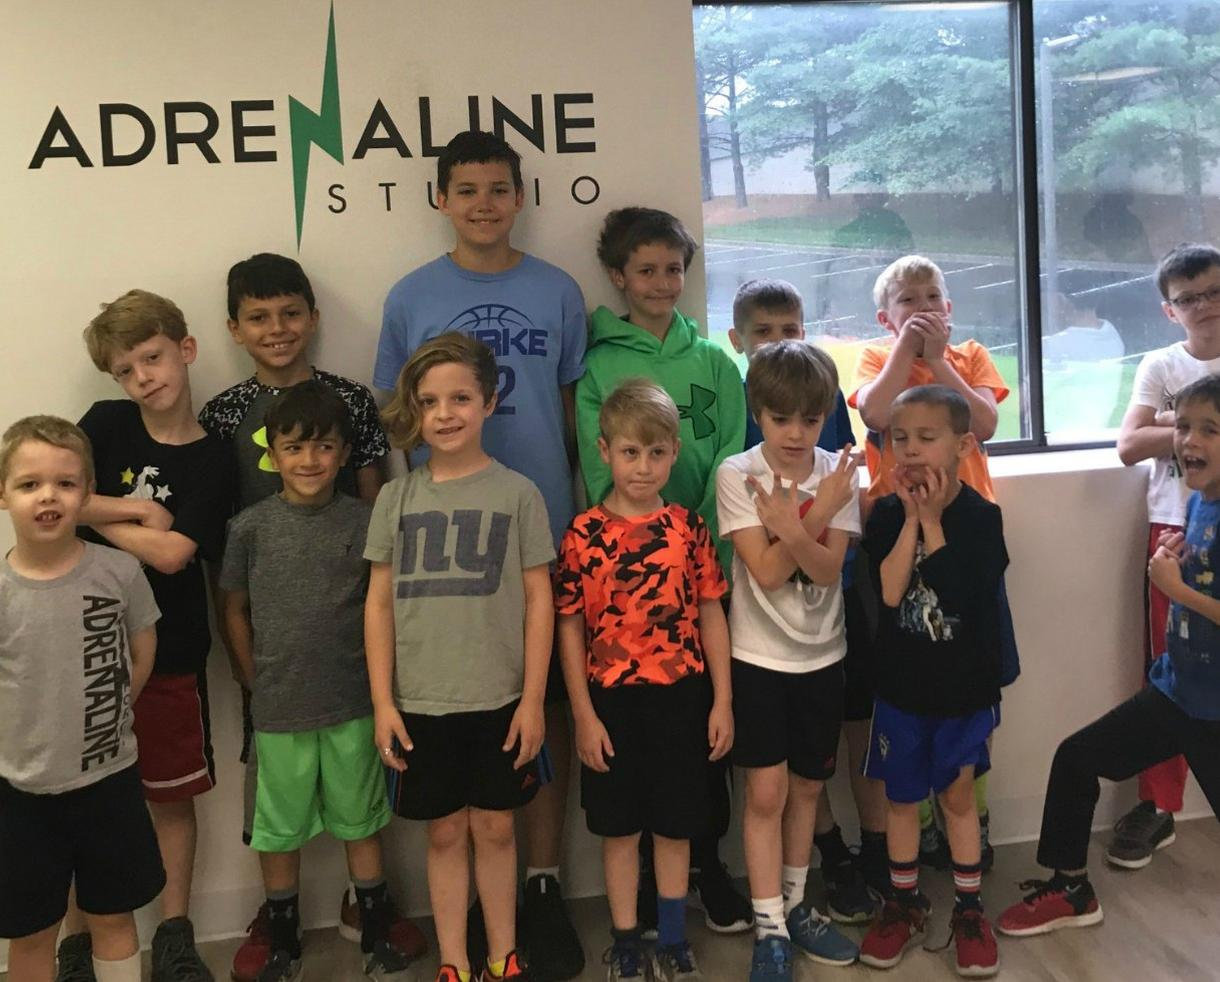 One Half-Day of Adrenaline Studio School's Out Princess Camp